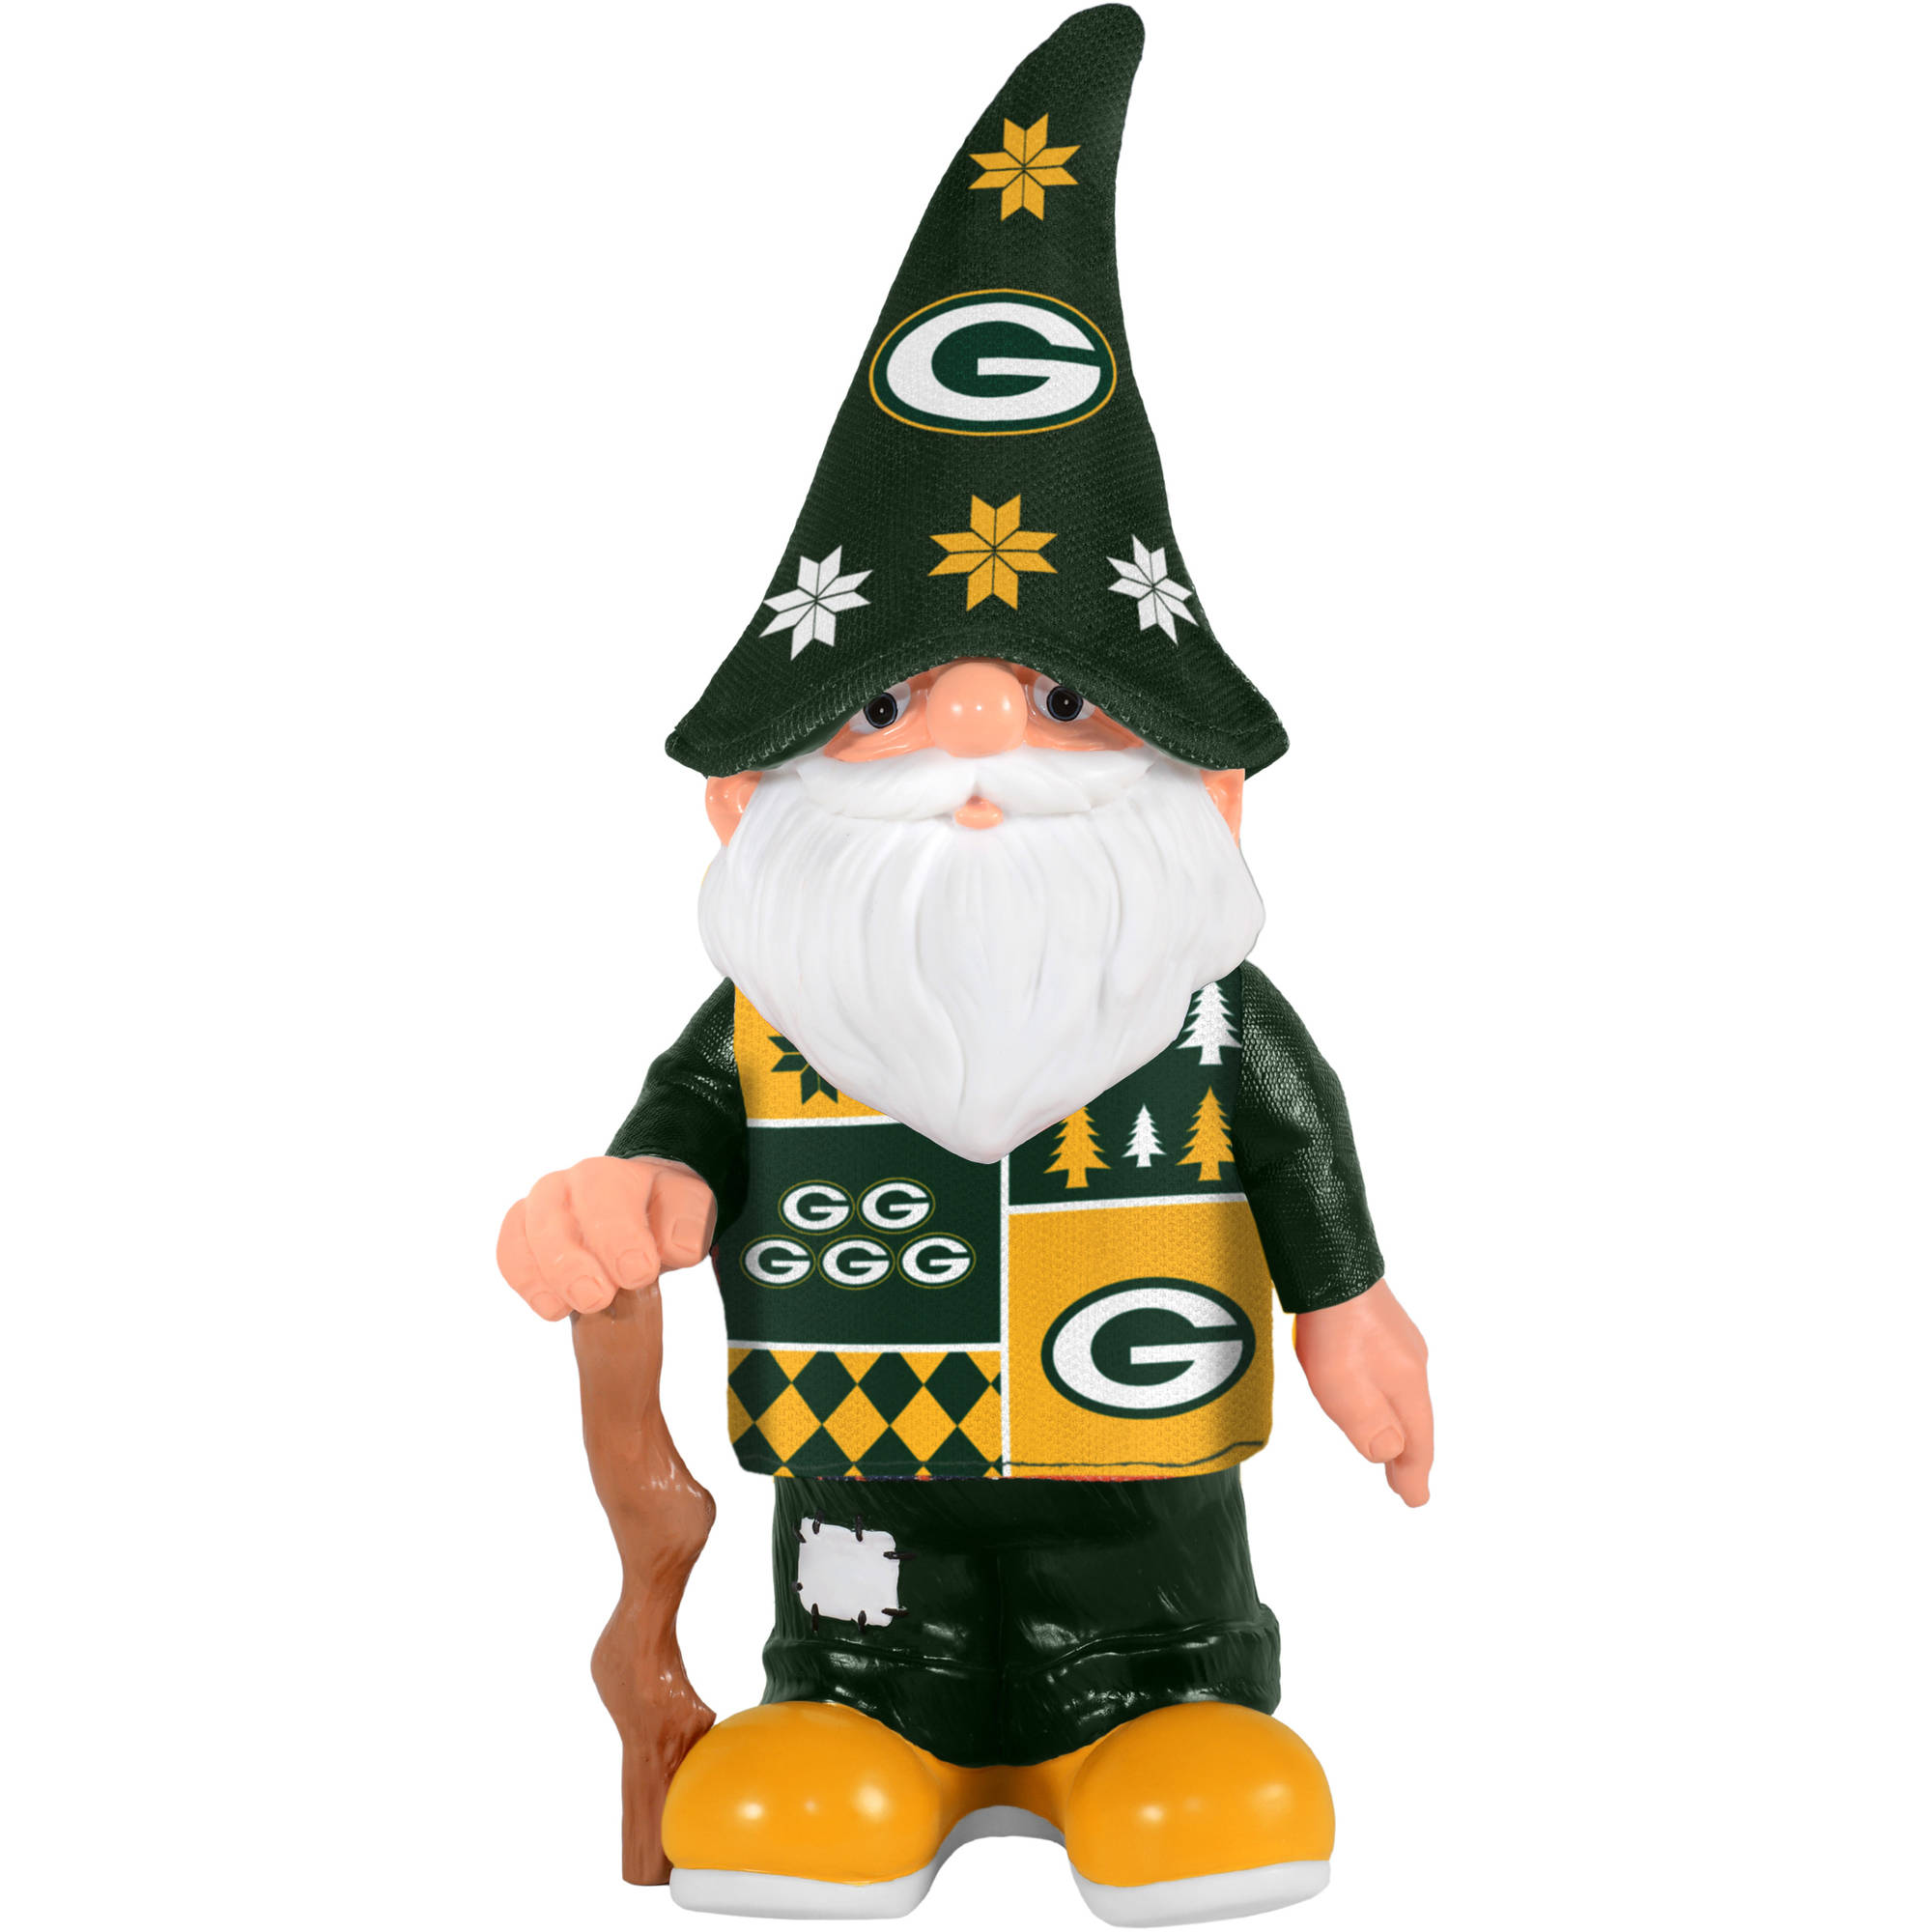 Forever Collectibles Nfl Real Ugly Sweater Gnome Green Bay Packers